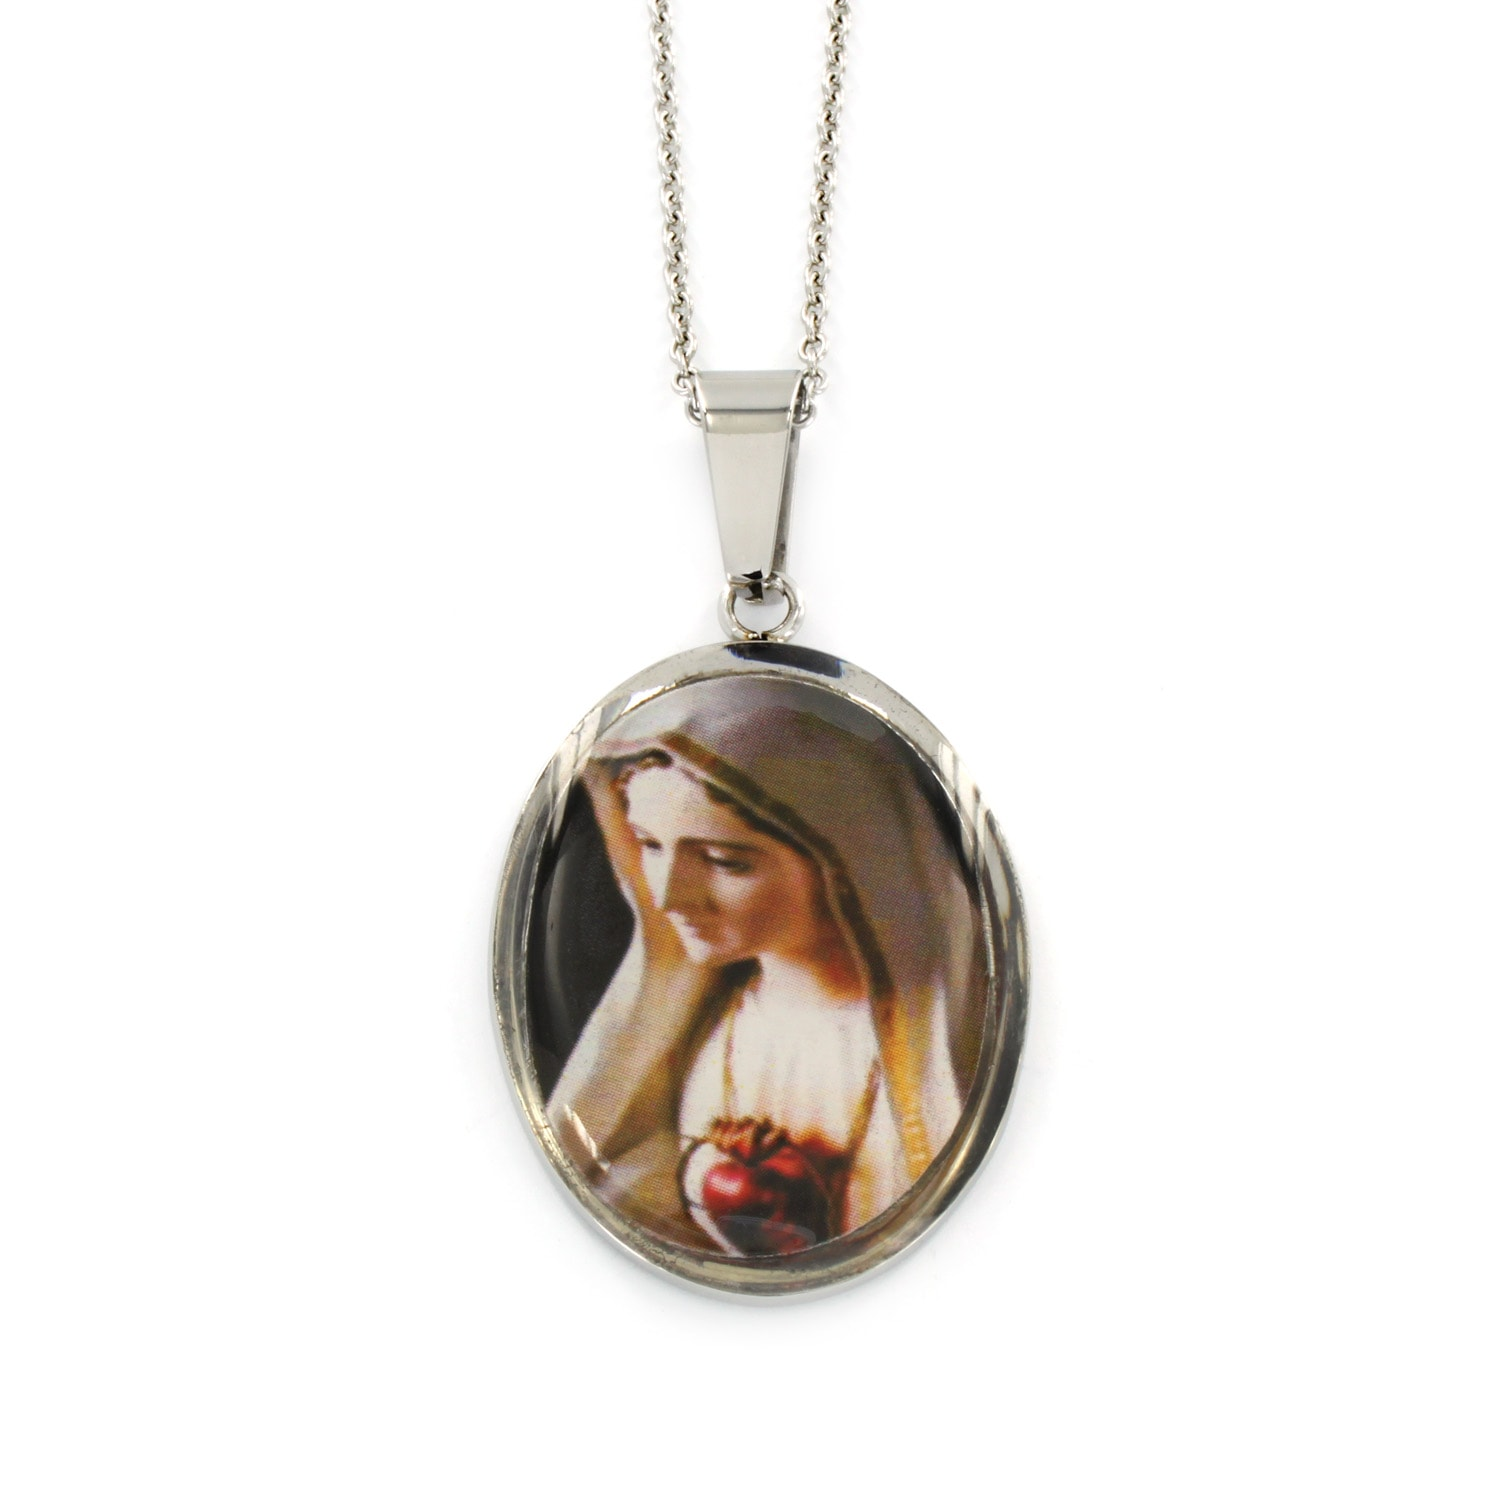 medallion hop mother design virgin steel product necklaces christian pendant new religious mary gold wholesale hip necklace